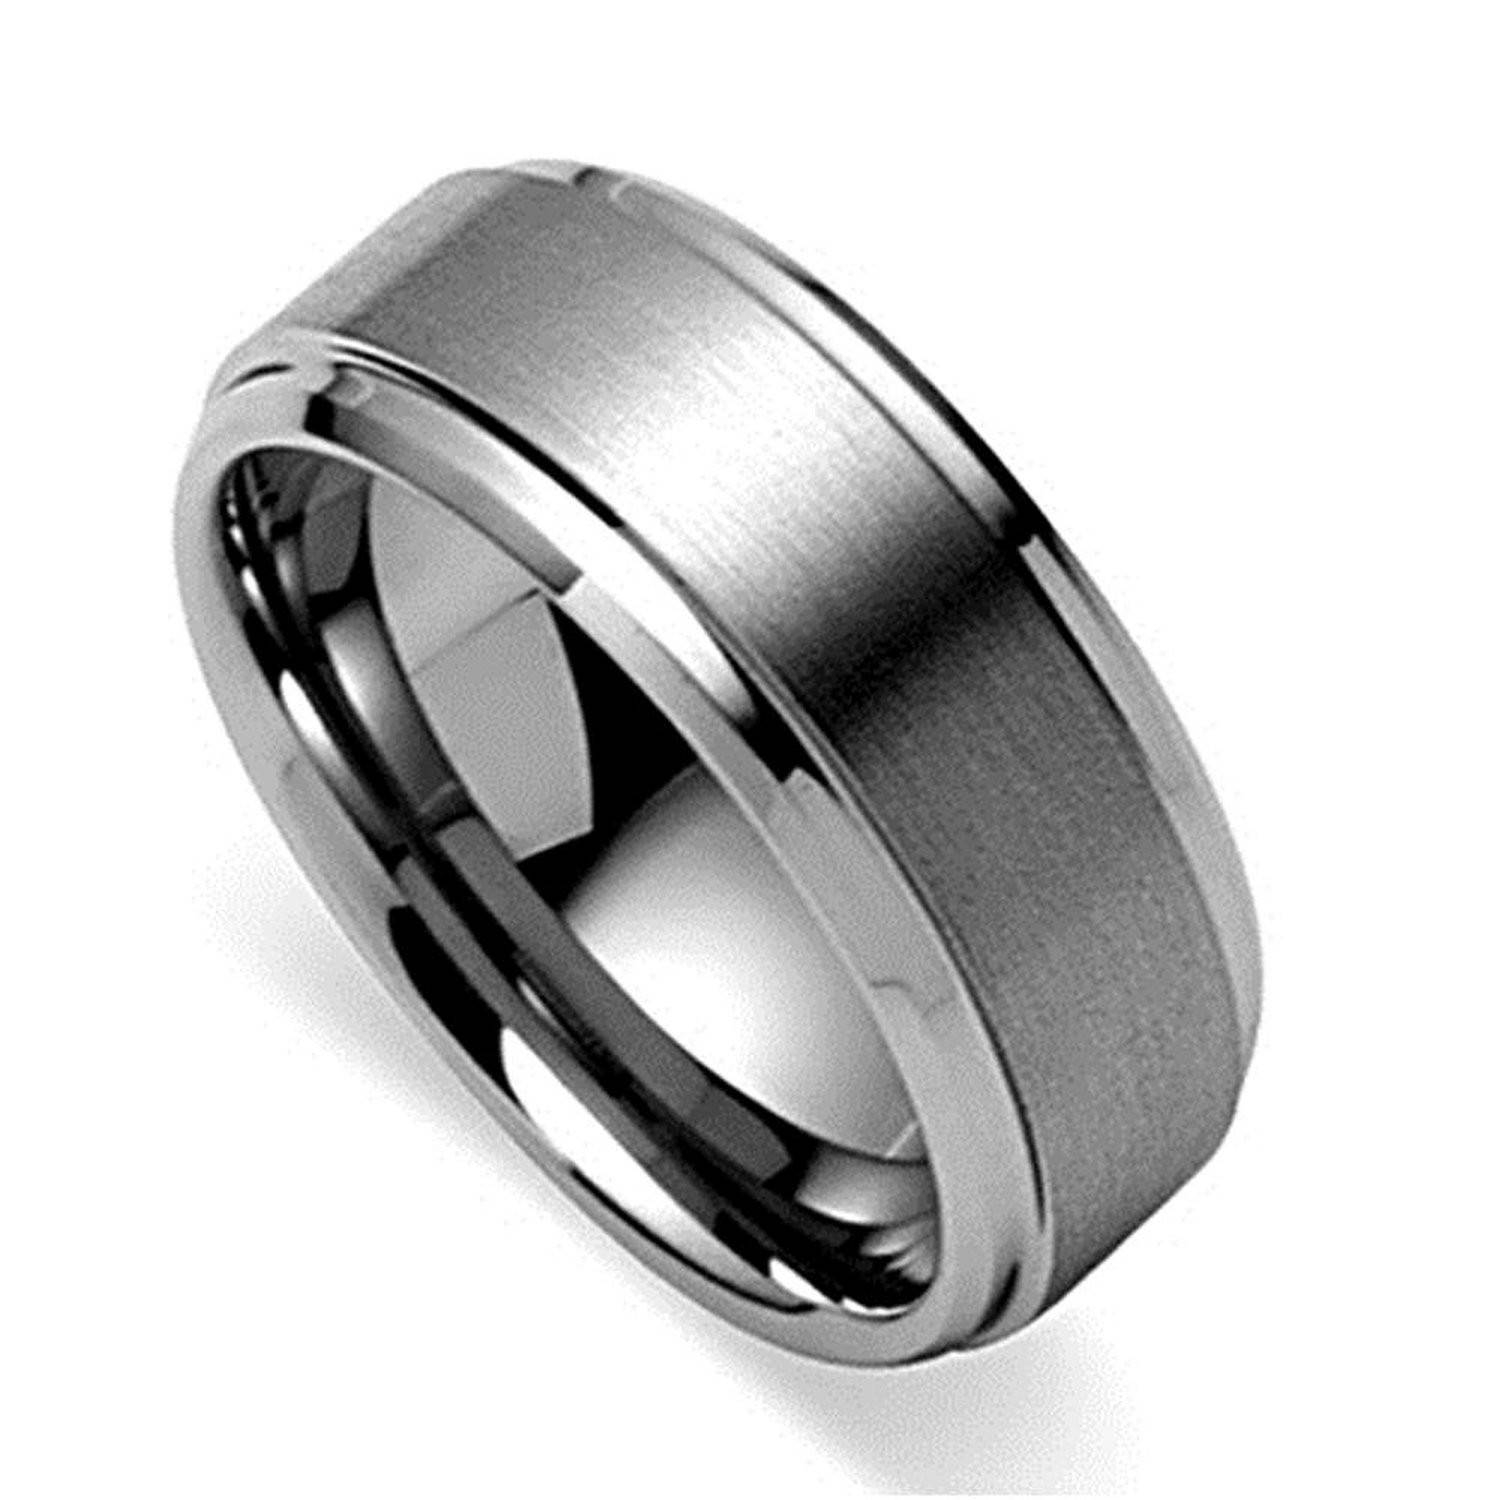 Batman Wedding Rings For Men Best Of Tiffany Wedding Bands Men With Tiffany Wedding Bands For Men (View 4 of 15)